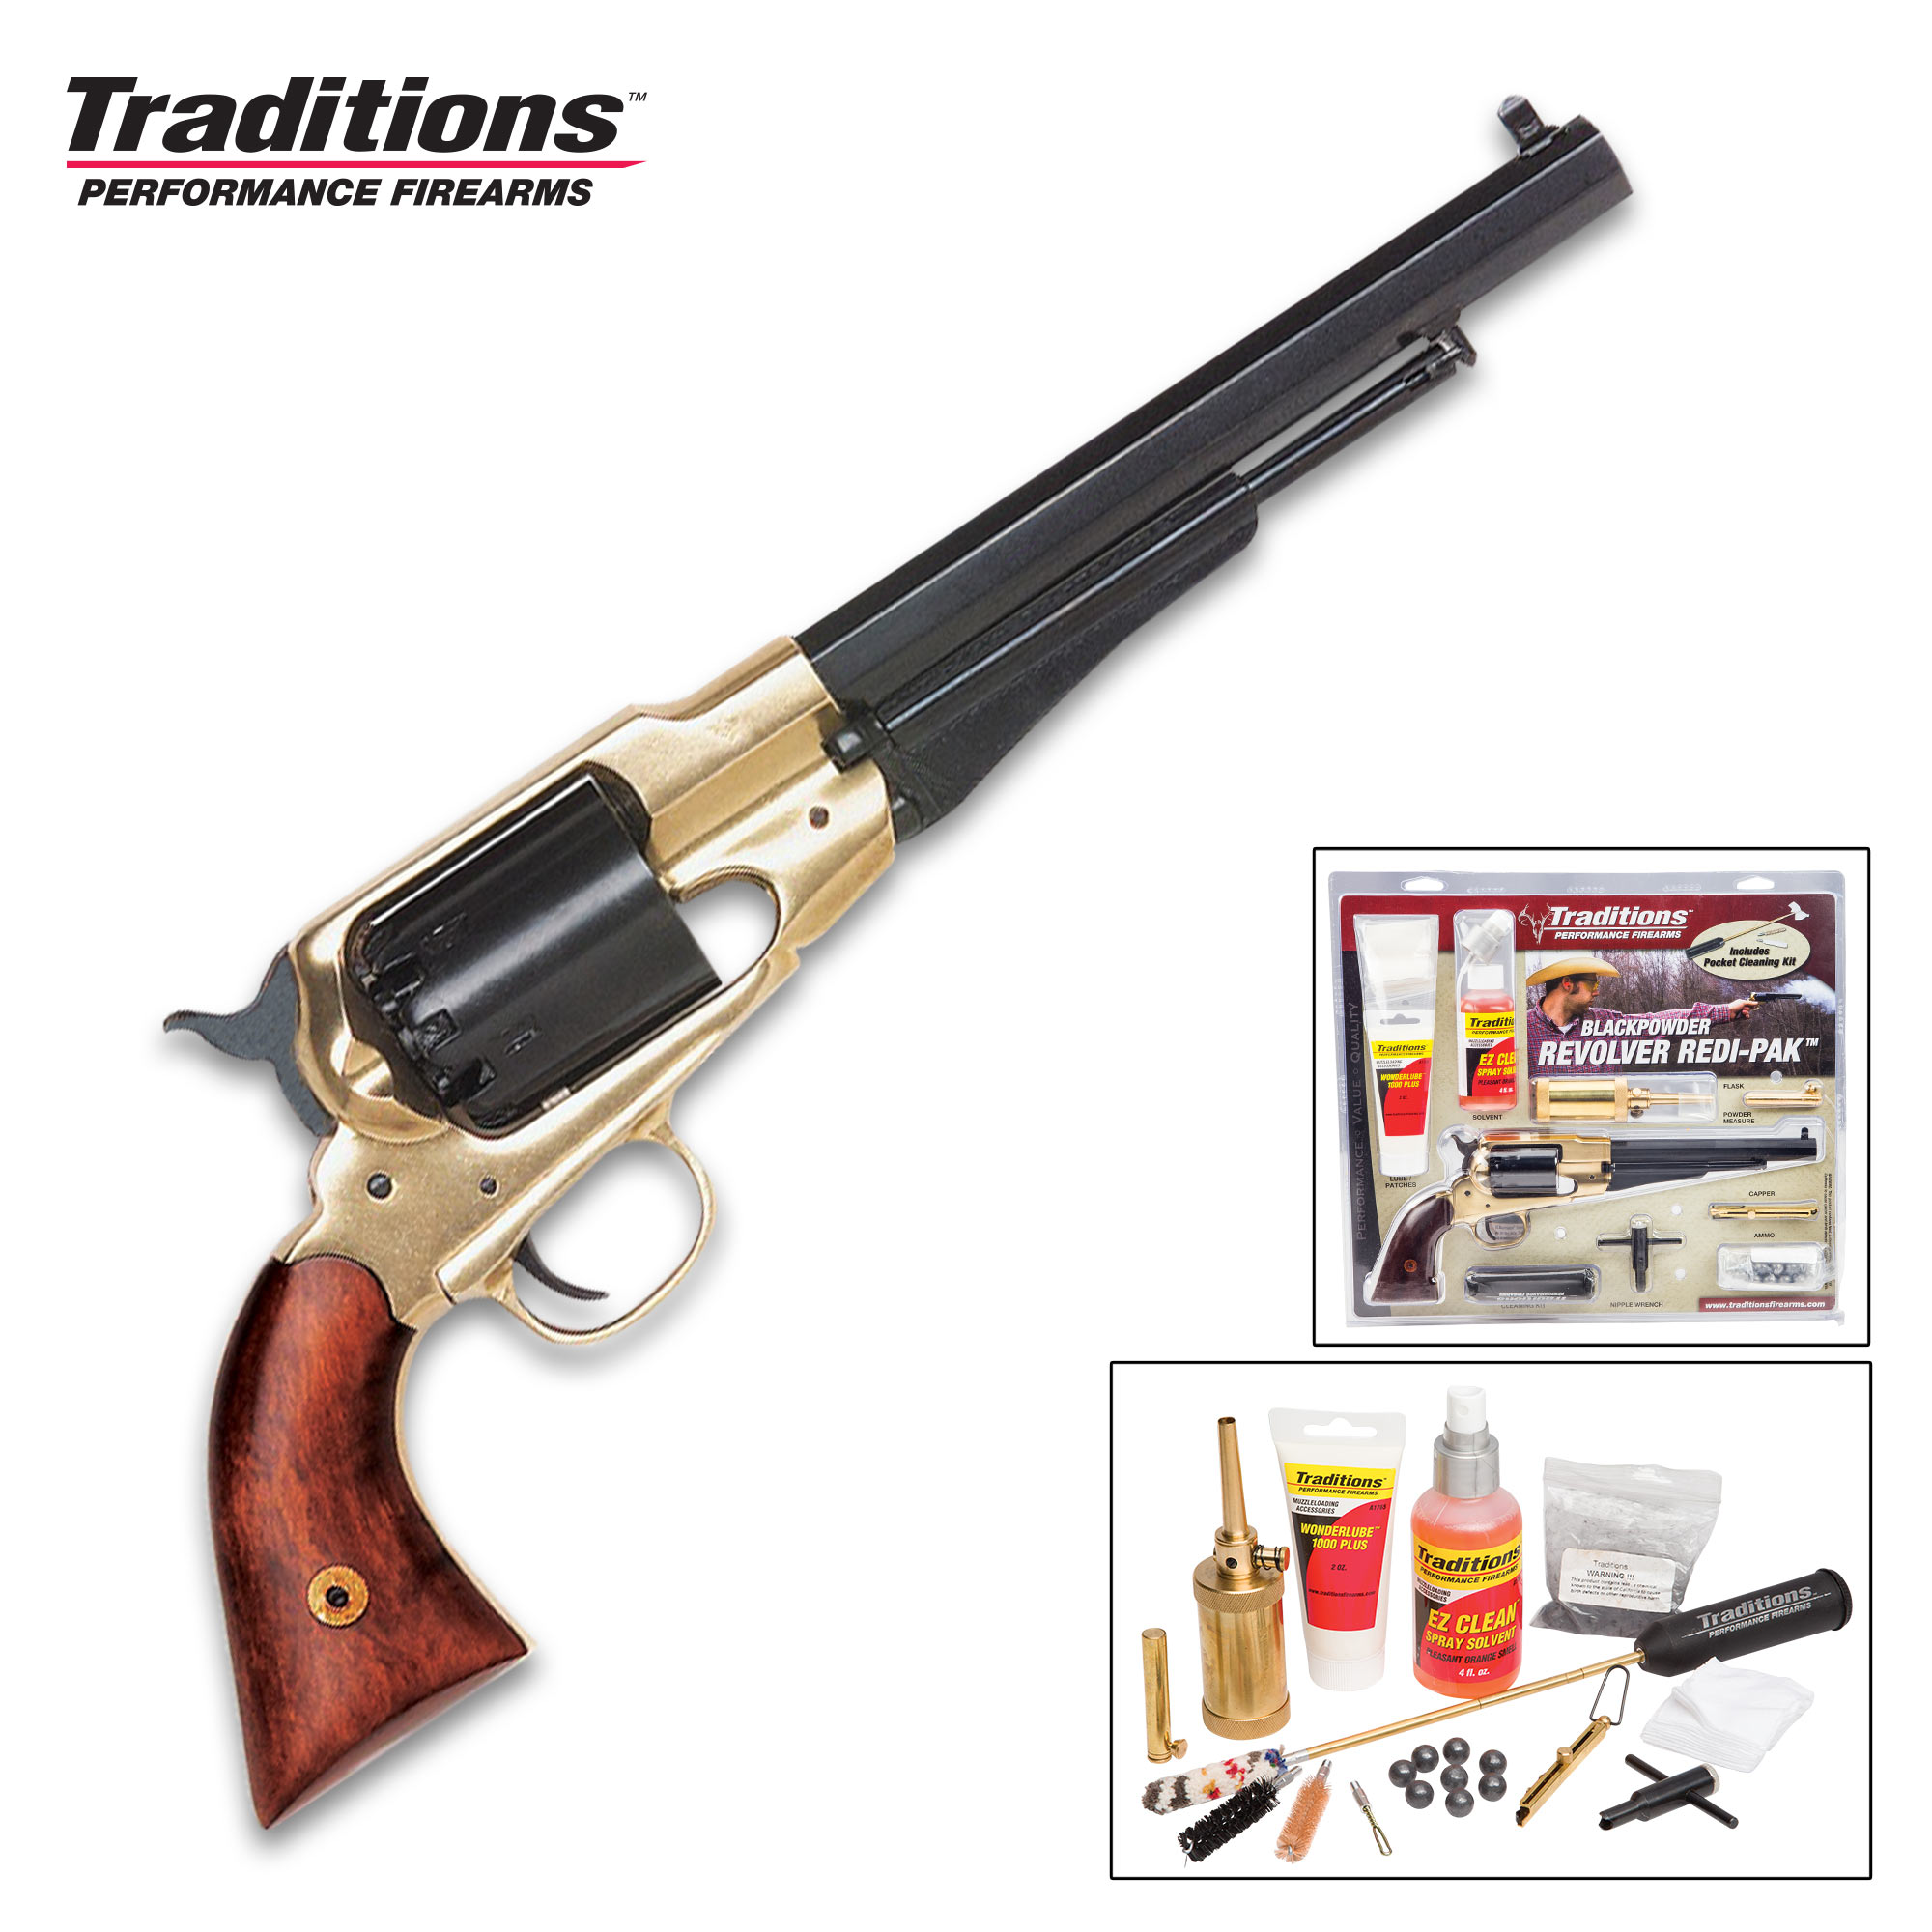 Traditions Firearms Colt 1858 Army Revolver with Redi-Pak